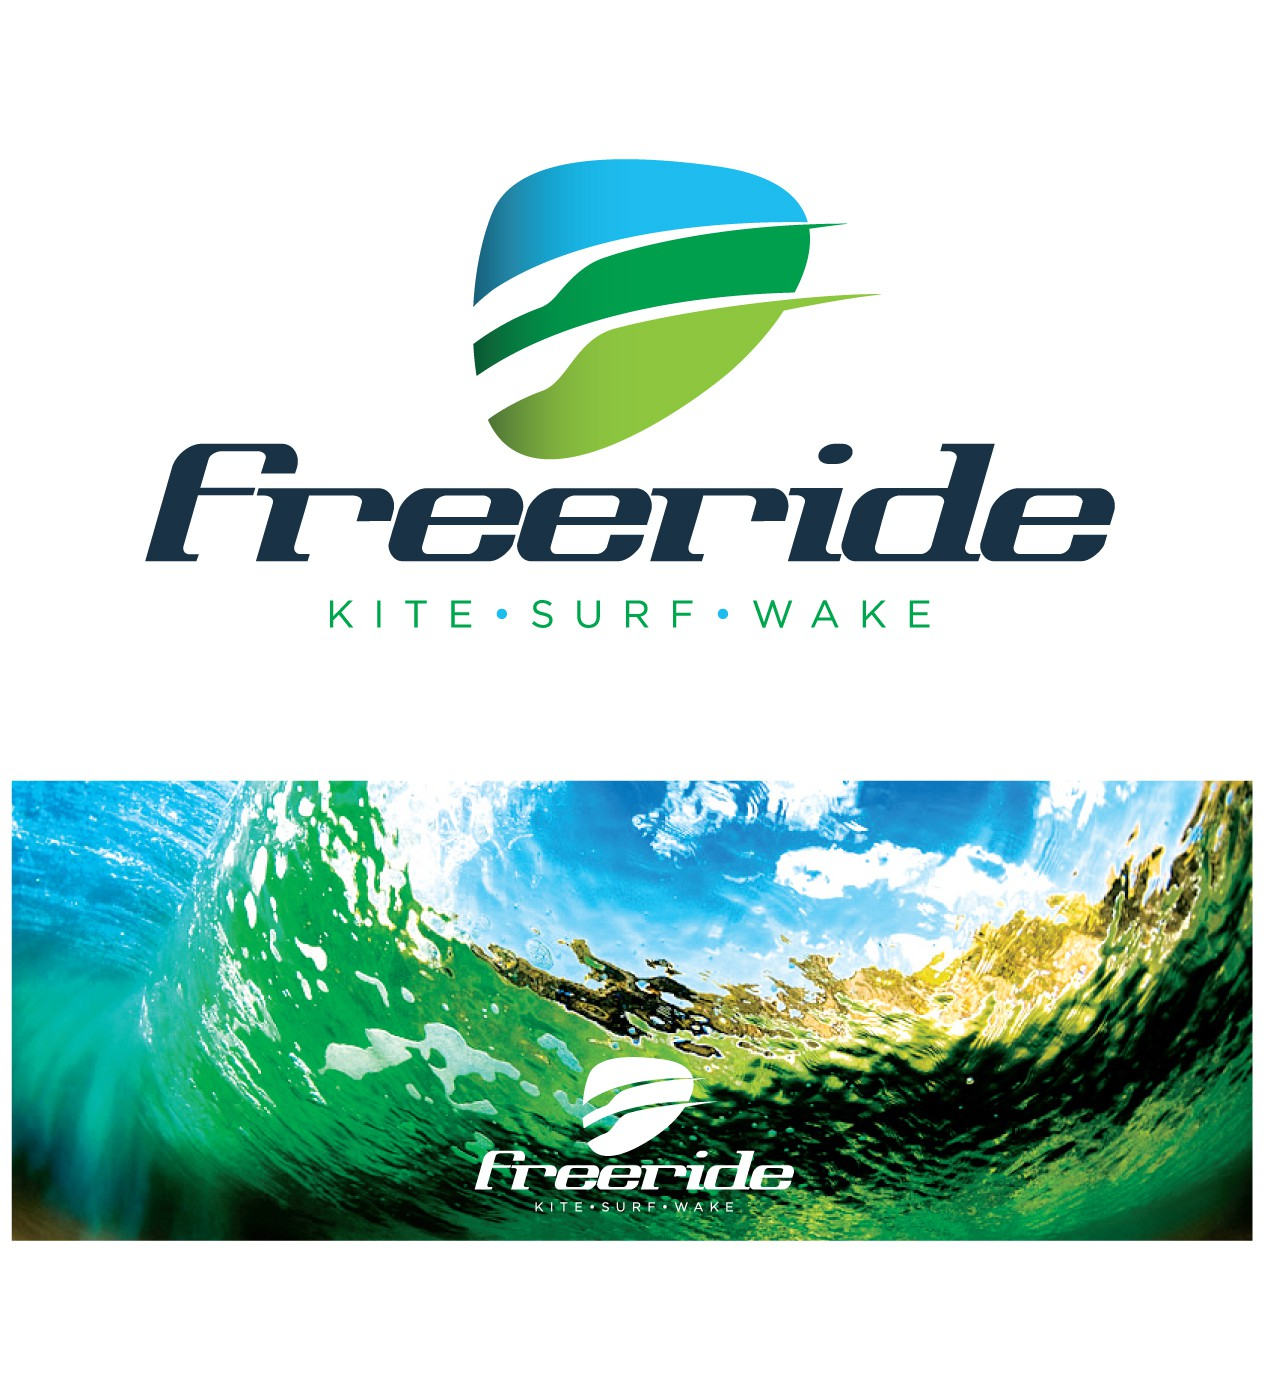 New logo wanted for Freeride